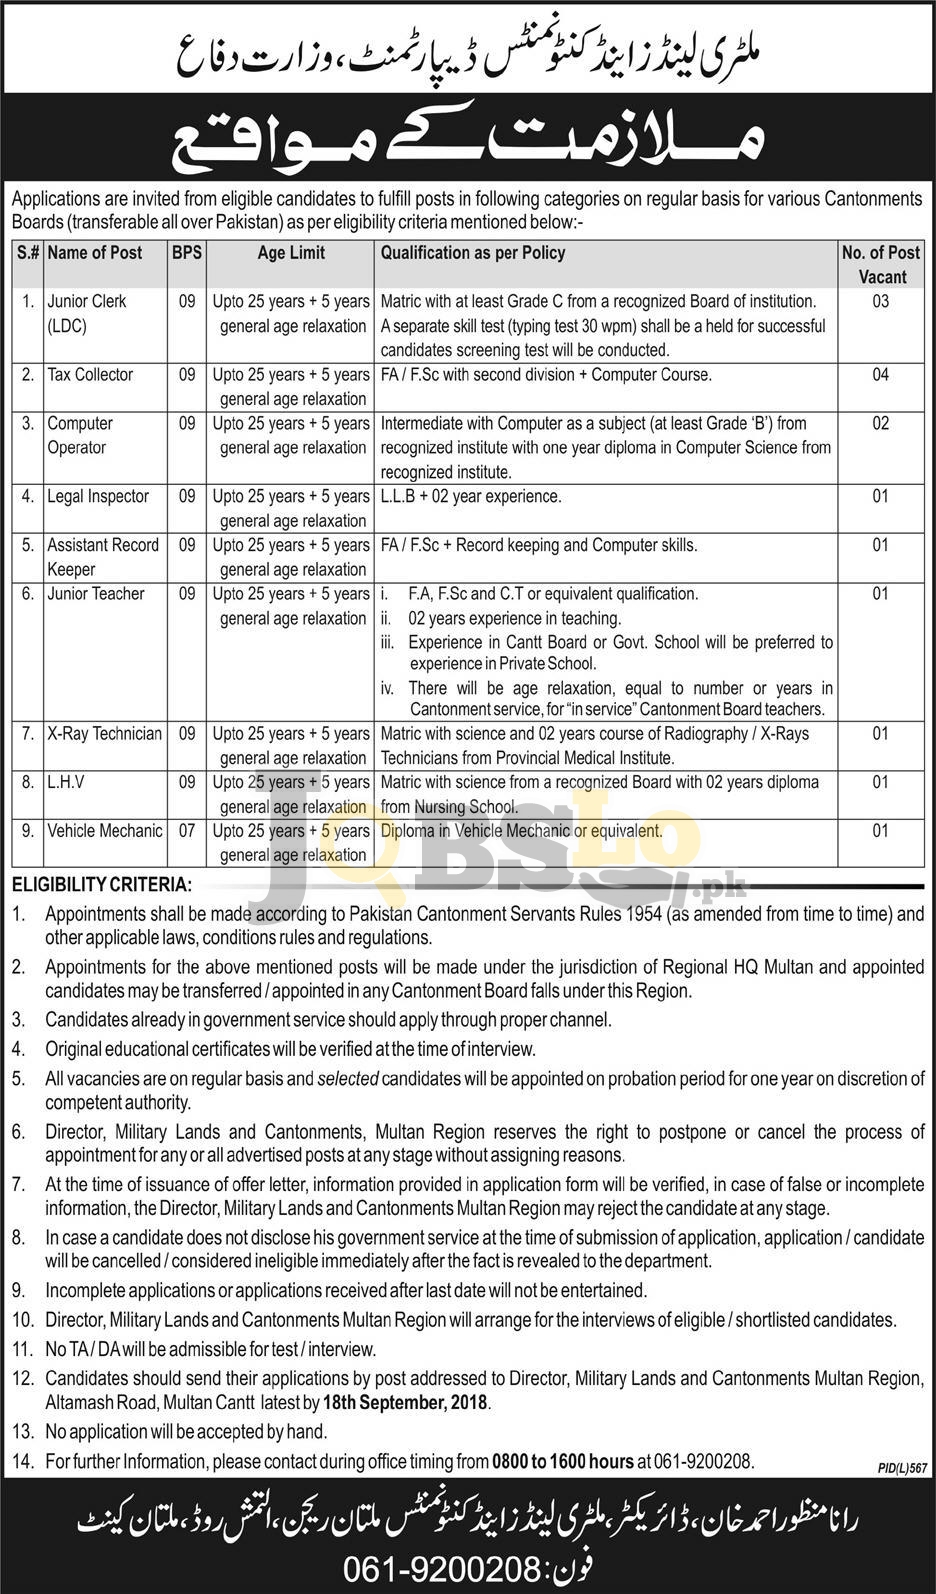 Military Land and Cantonment Department Jobs 2018 Multan Latest Advertisement